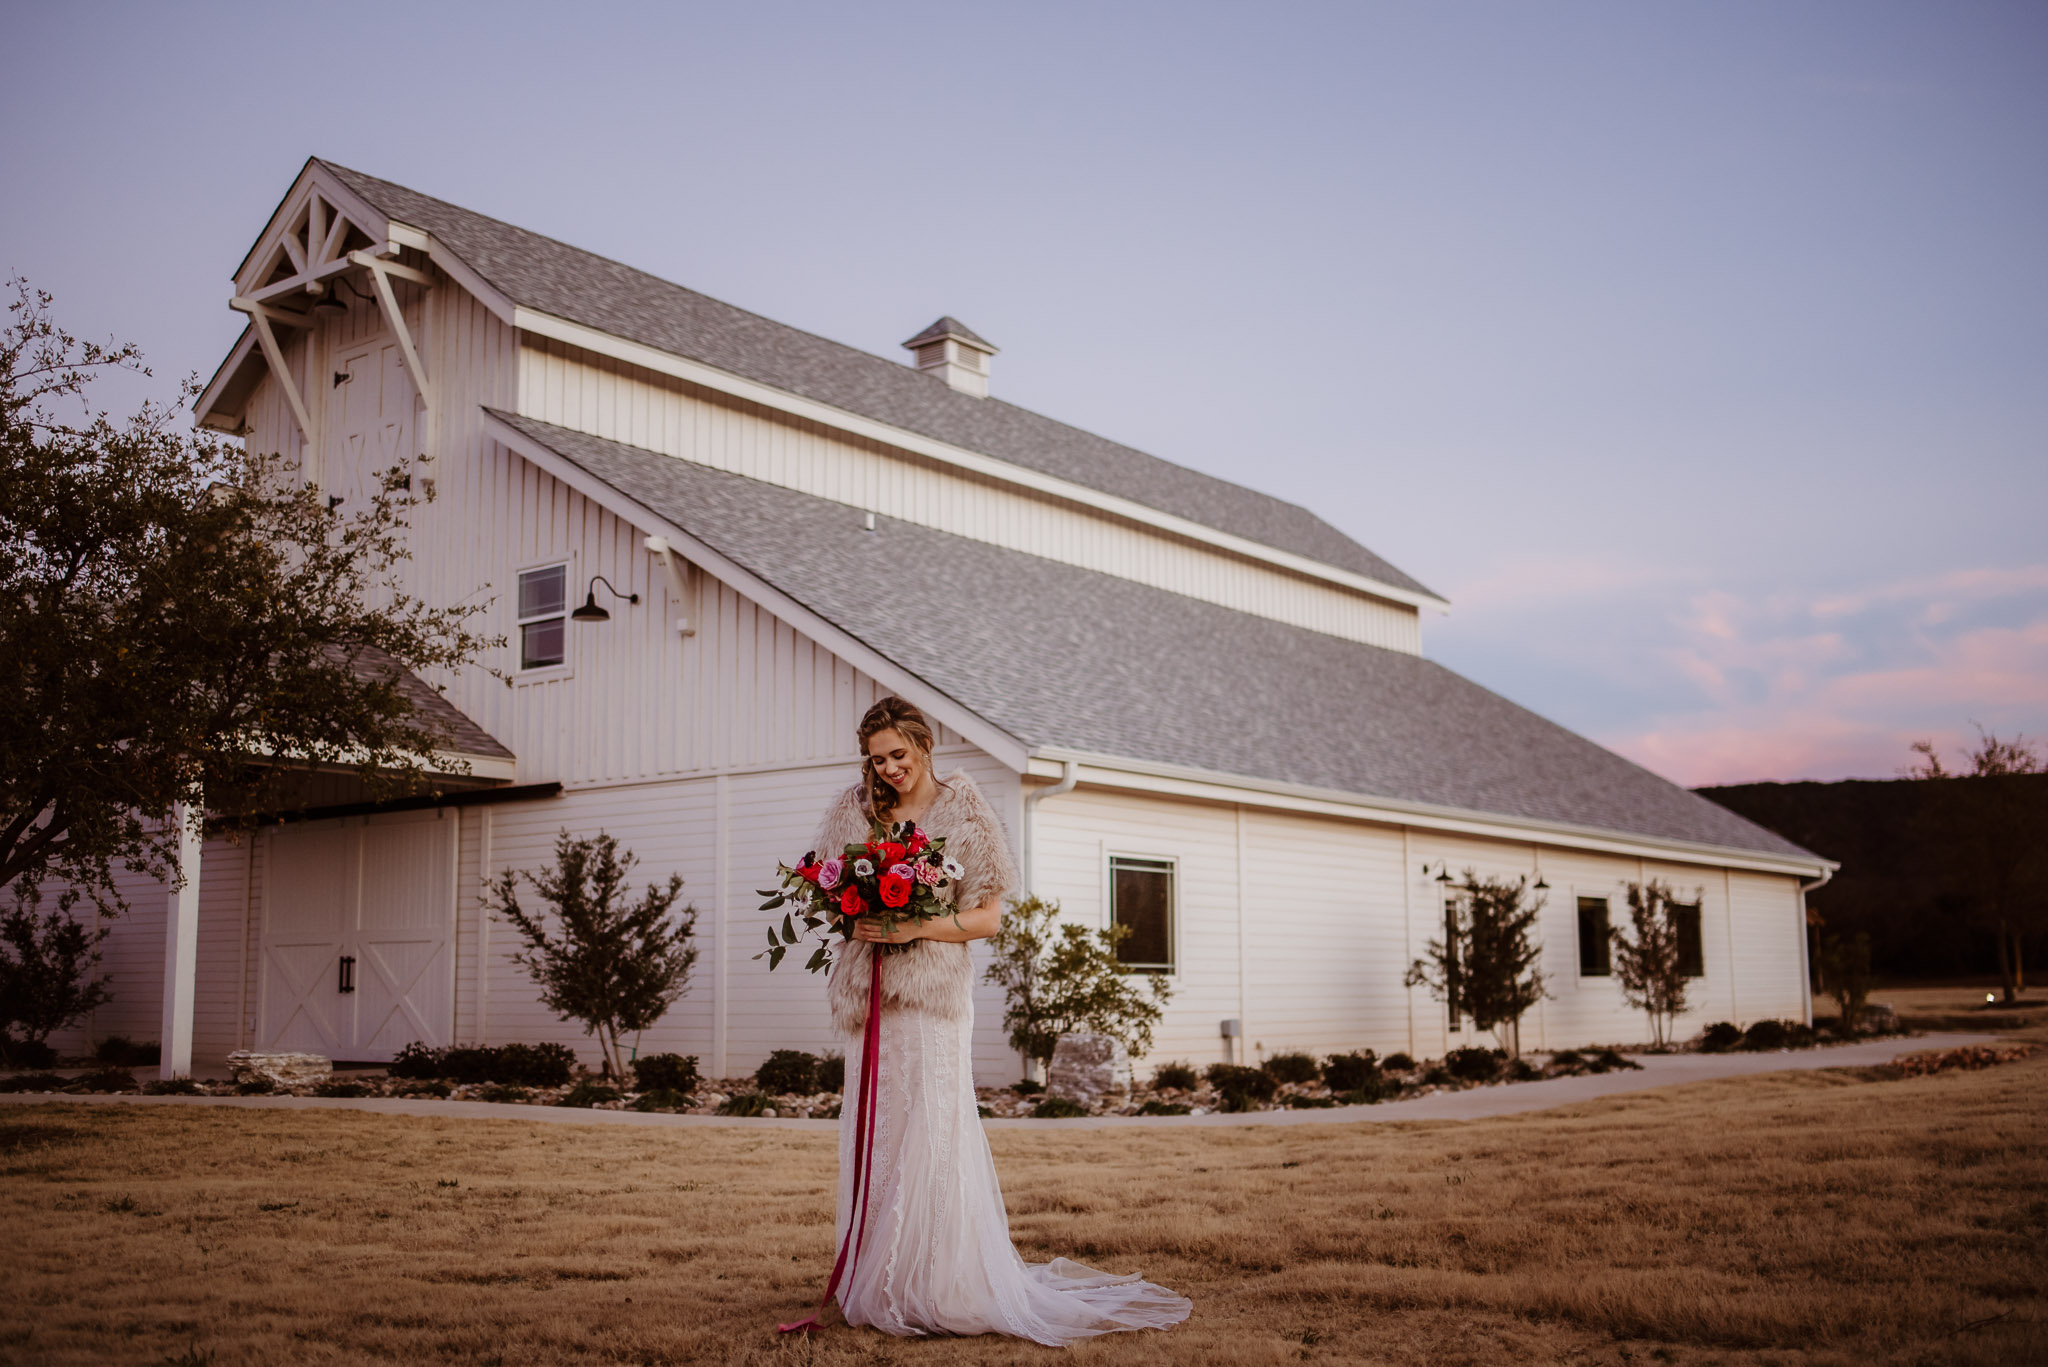 Sabrina Cedars - Sabrina Cedars is an elegant white barn that stands out perfectly against the West Texas sky, Abilene's scenic hills all while beautifully surrounded by West Texas greenery. Sabrina Cedars is about 15 minuets outside of Abilene which means it's one of the most beautiful and easily accessible wedding venues to Abilene brides who are looking for something outdoorsy, tucked away and elegant.